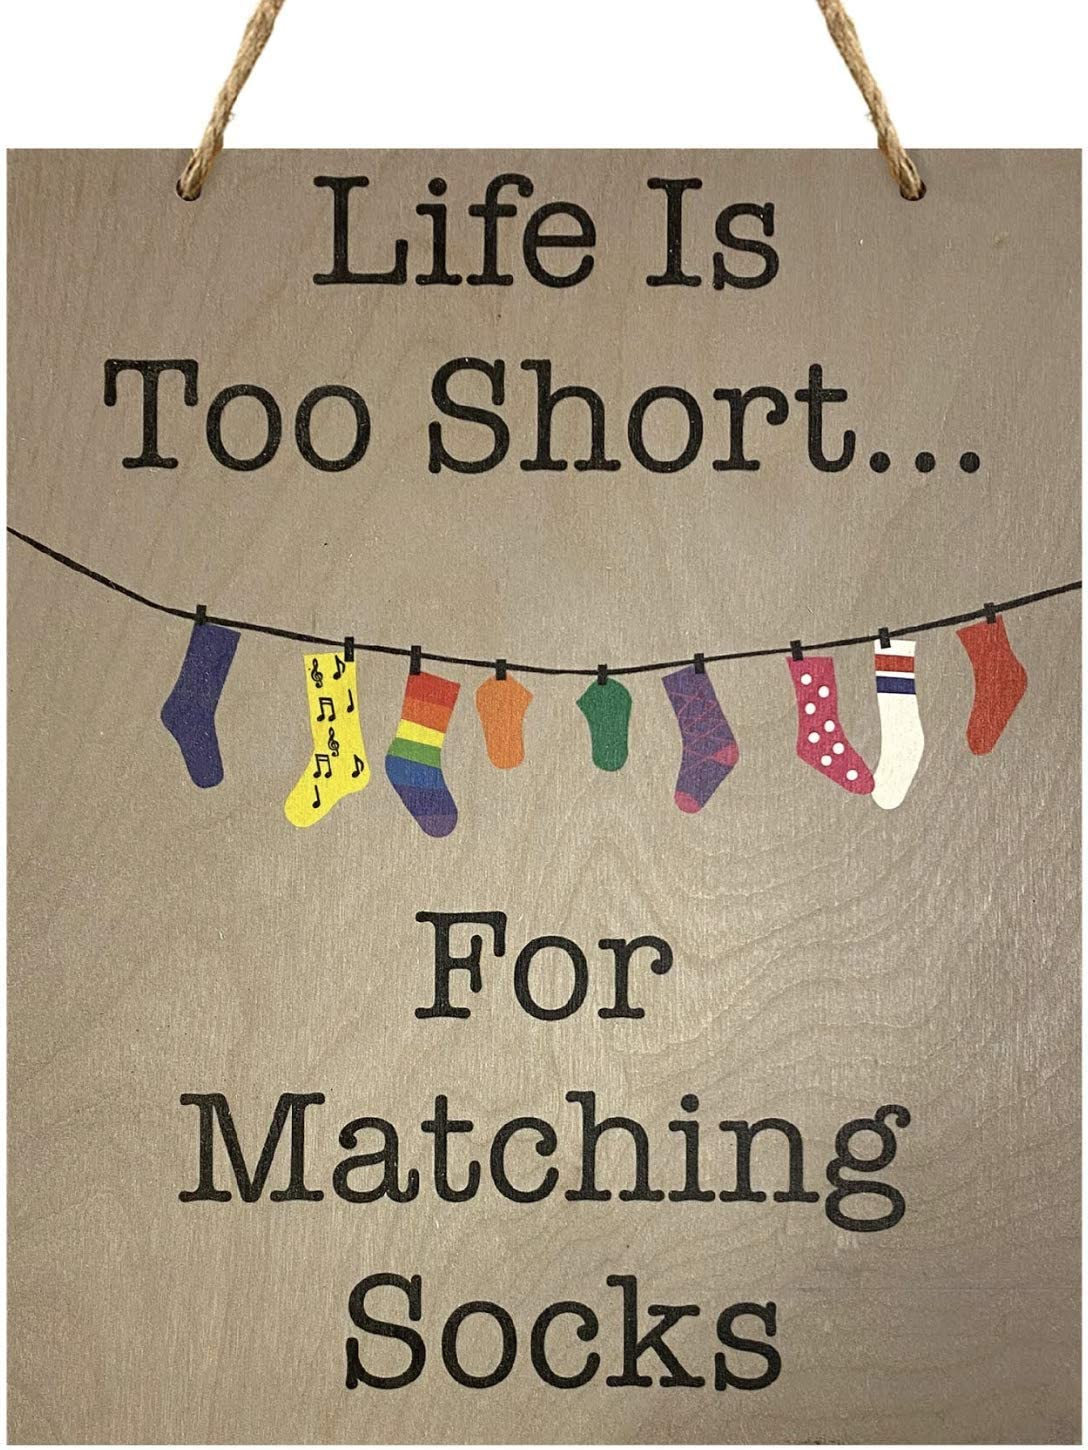 JennyGems Life is Too Short for Matching Socks | Laundry Room Decor | Wood Sign | Funny Laundry Room